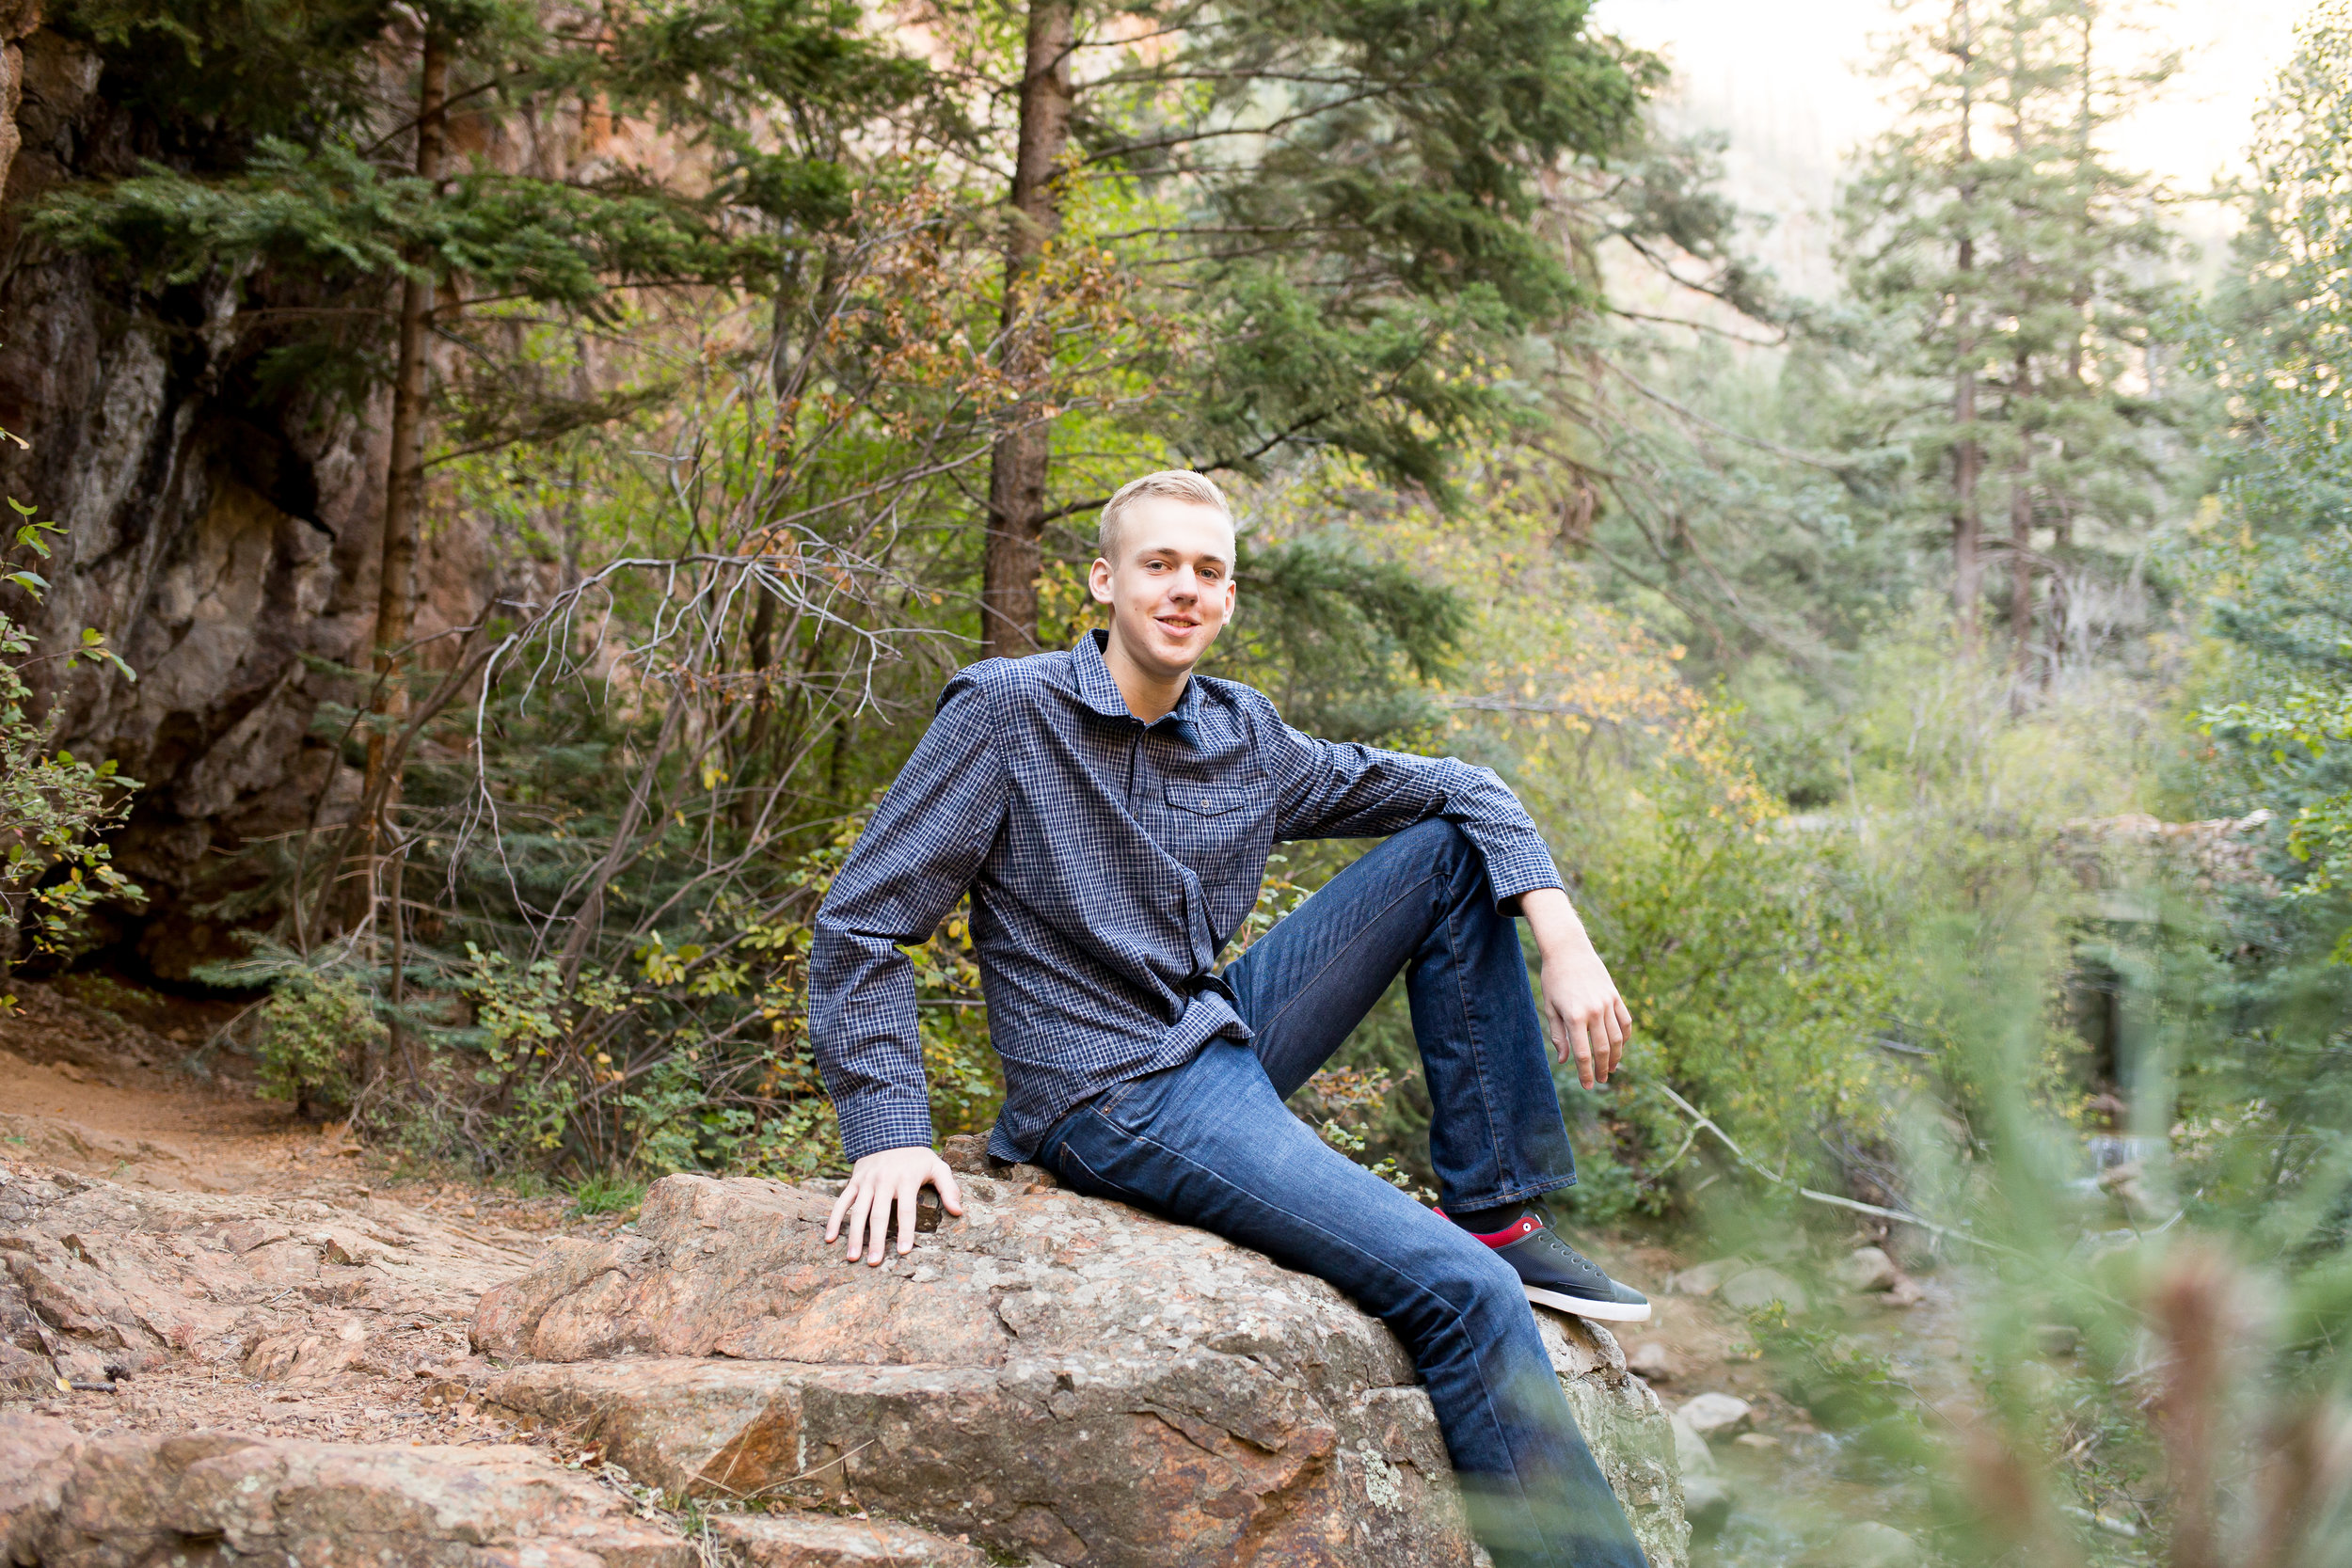 Colorado Springs Senior Photography | Widefield High School senior session in Cheyenne Canyon | Stacy Carosa Photography | Colorado Springs Senior Photographer